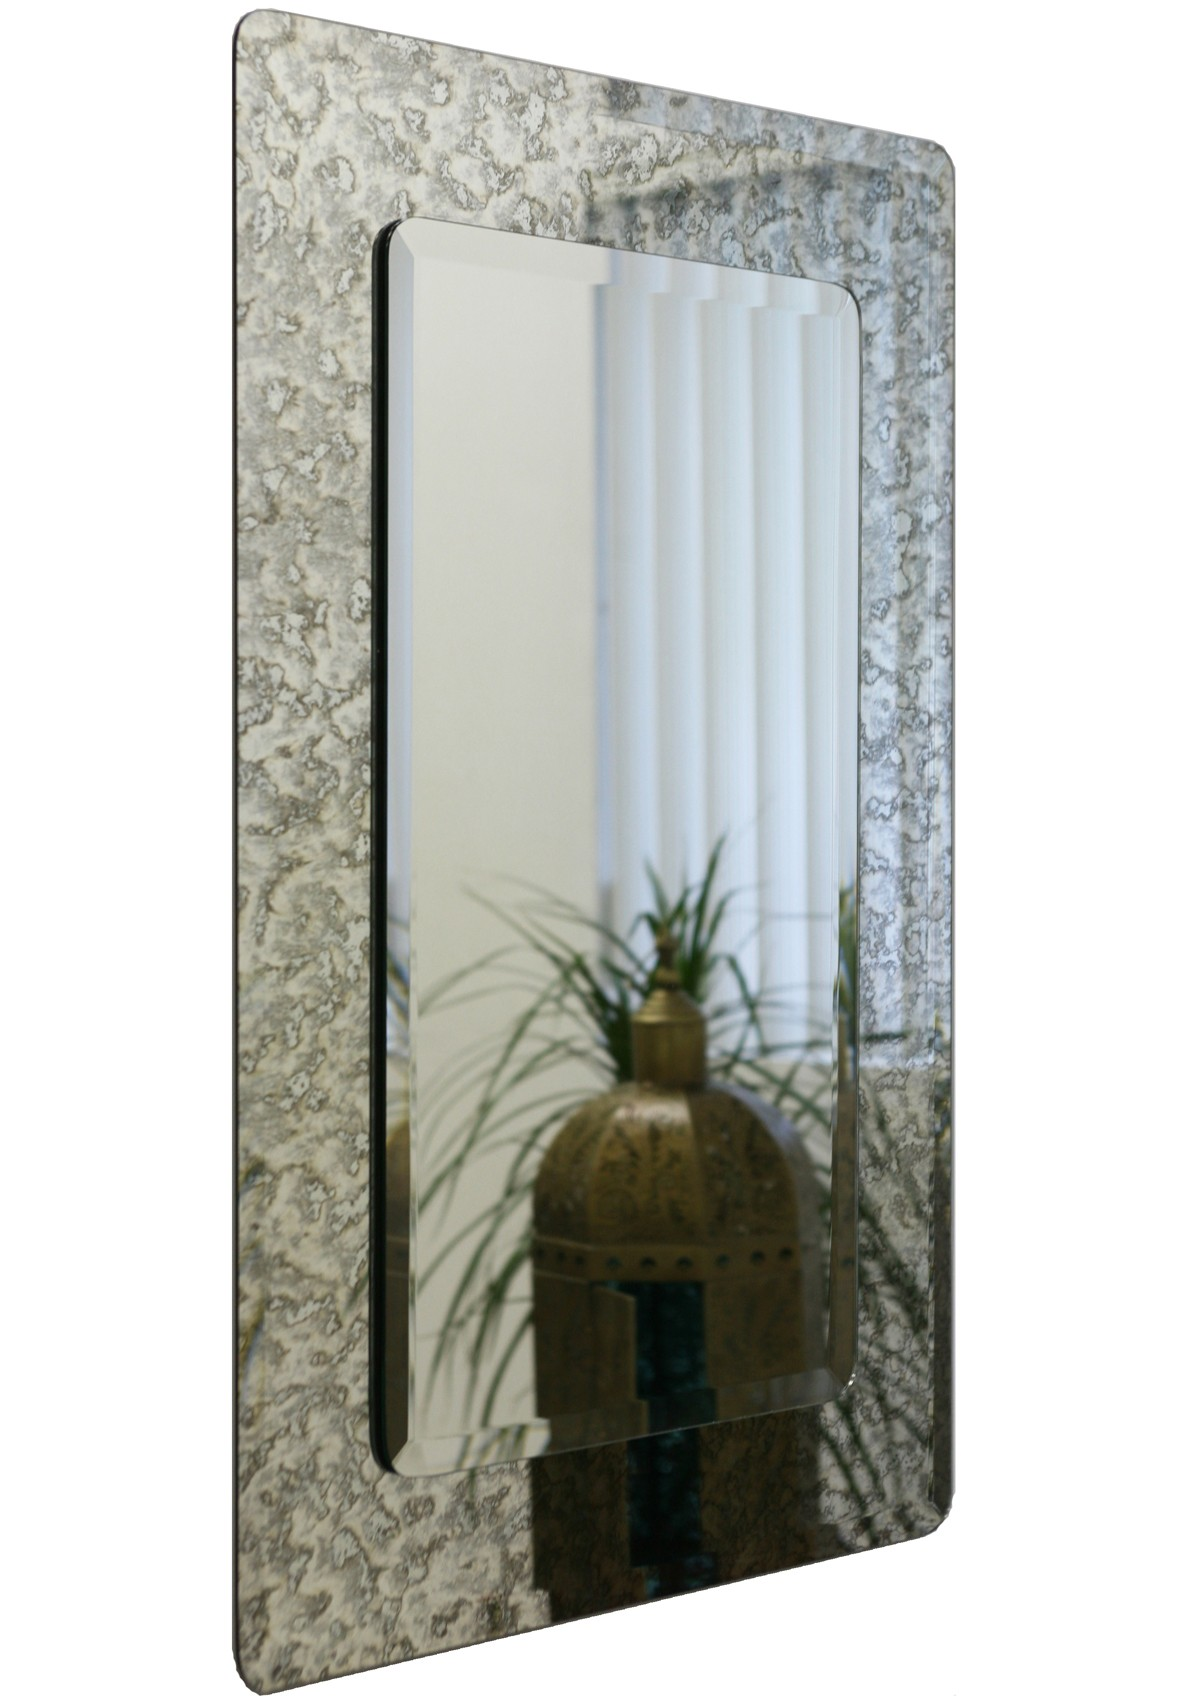 "Castleton 24"" x 36"" Rectangle Vintage Mirror"